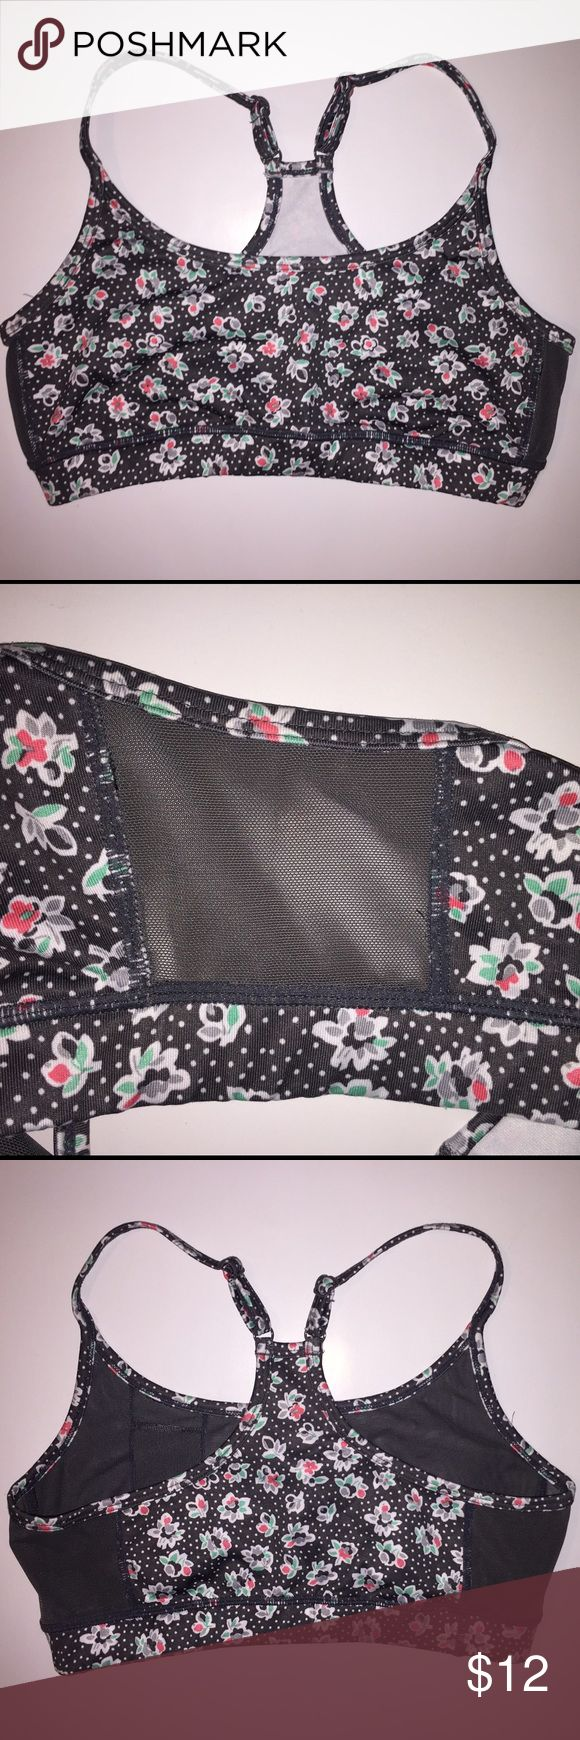 Lightweight Patterned Sports Bra Aerie flower pattern Sports Bra with adjustable straps and side mesh inserts. There is a small inside pocket on the left side for convenience! Perfect lightweight Sports Bra! Size small. aerie Other